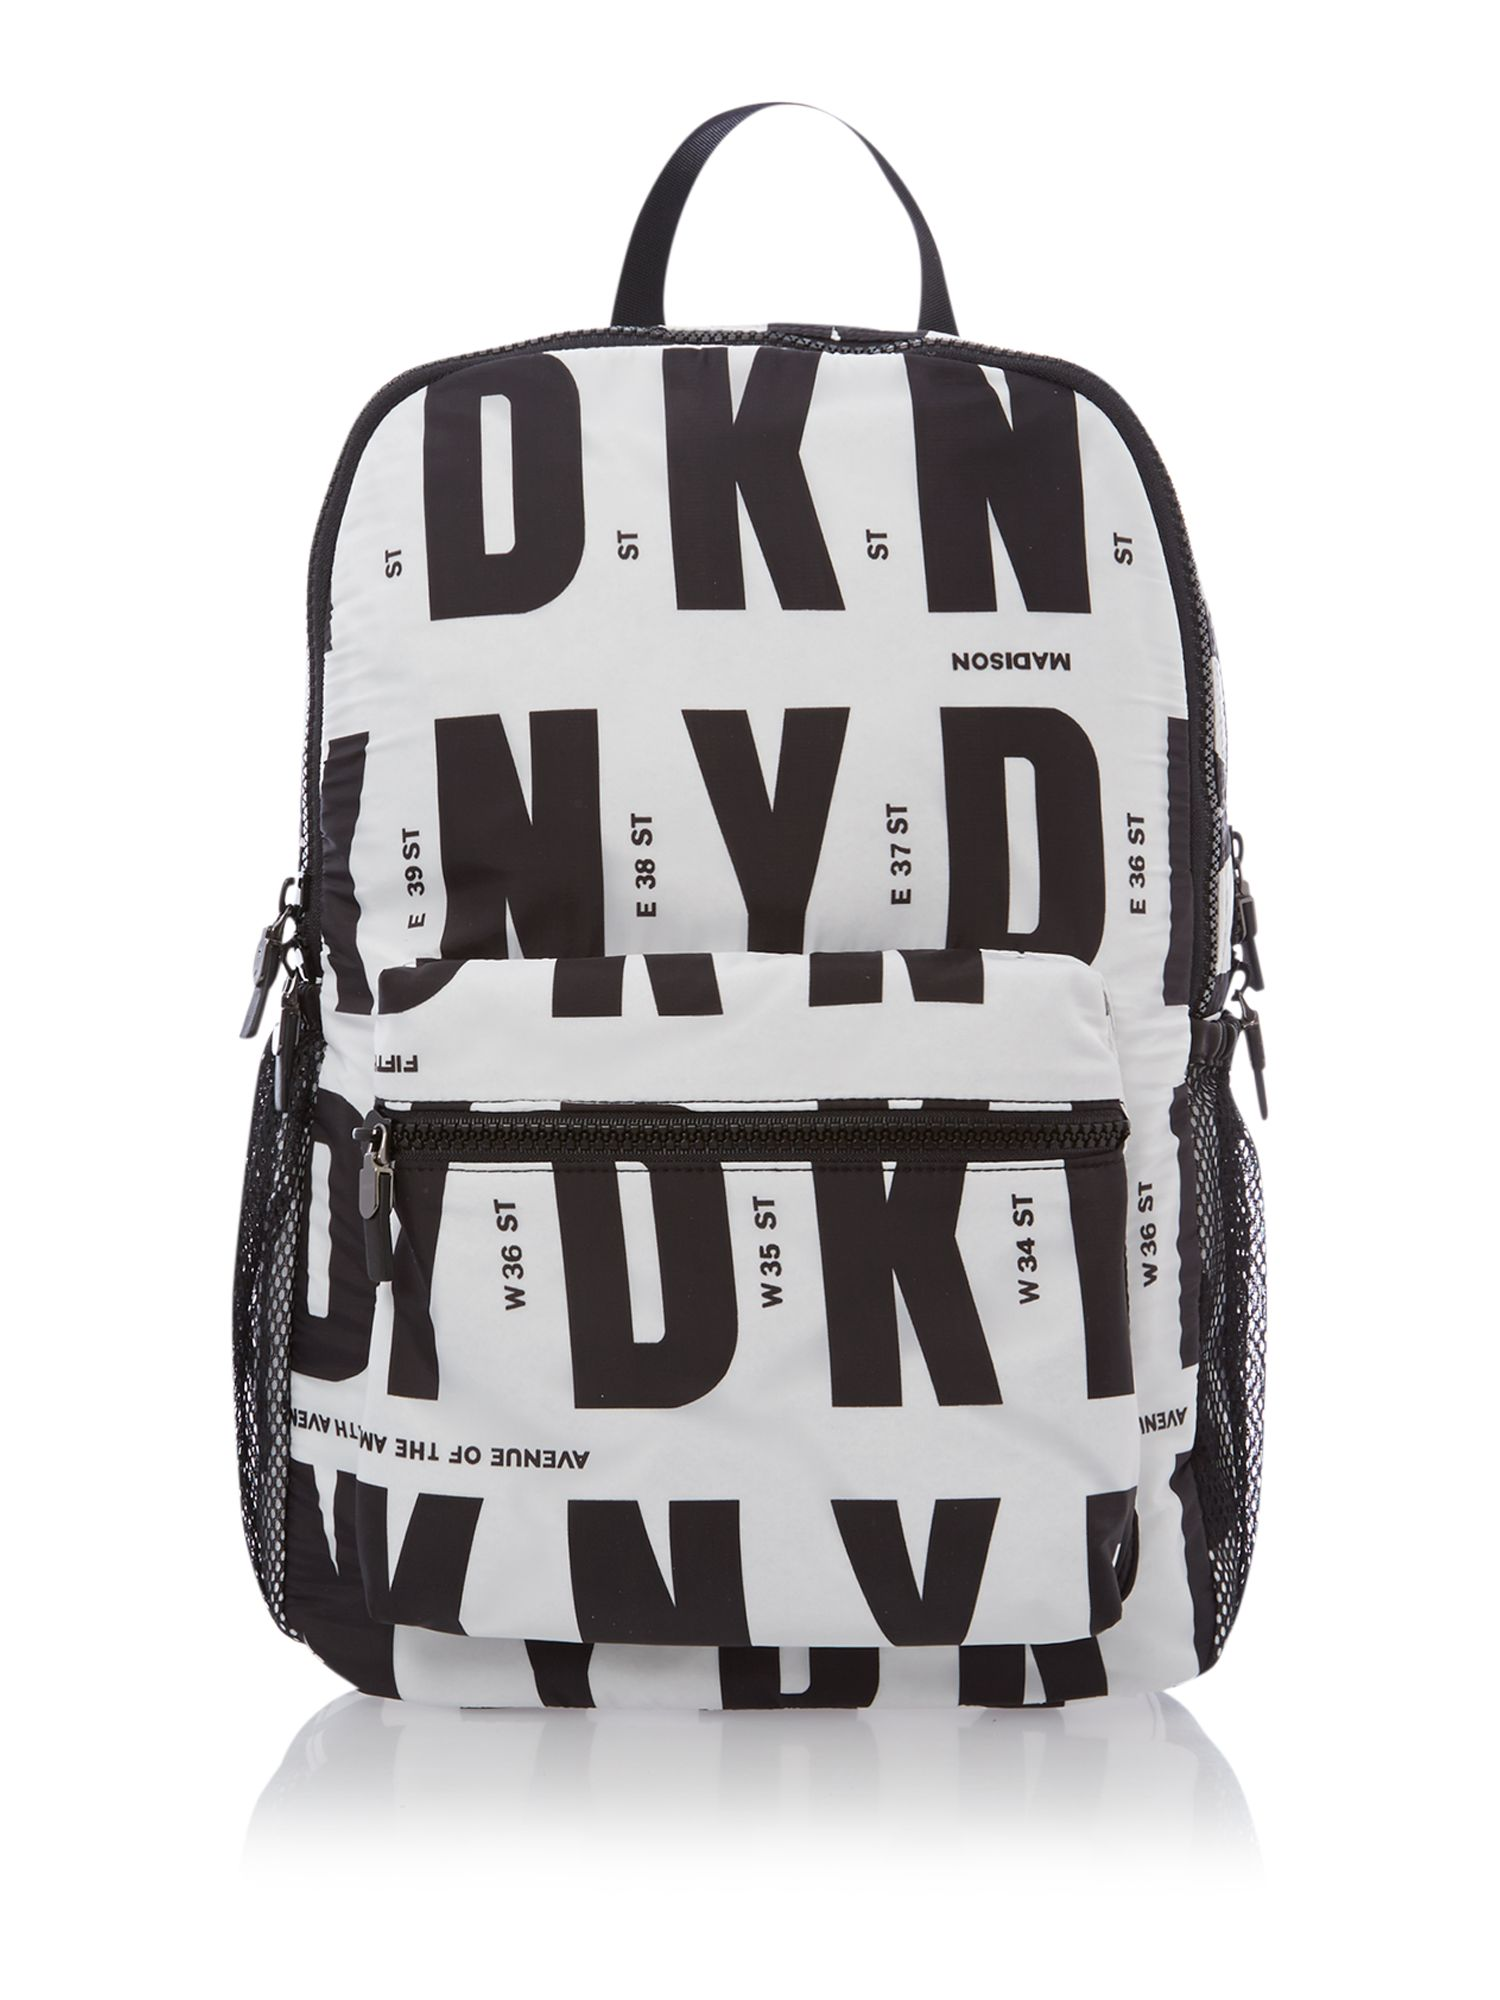 Runway multi-coloured back pack